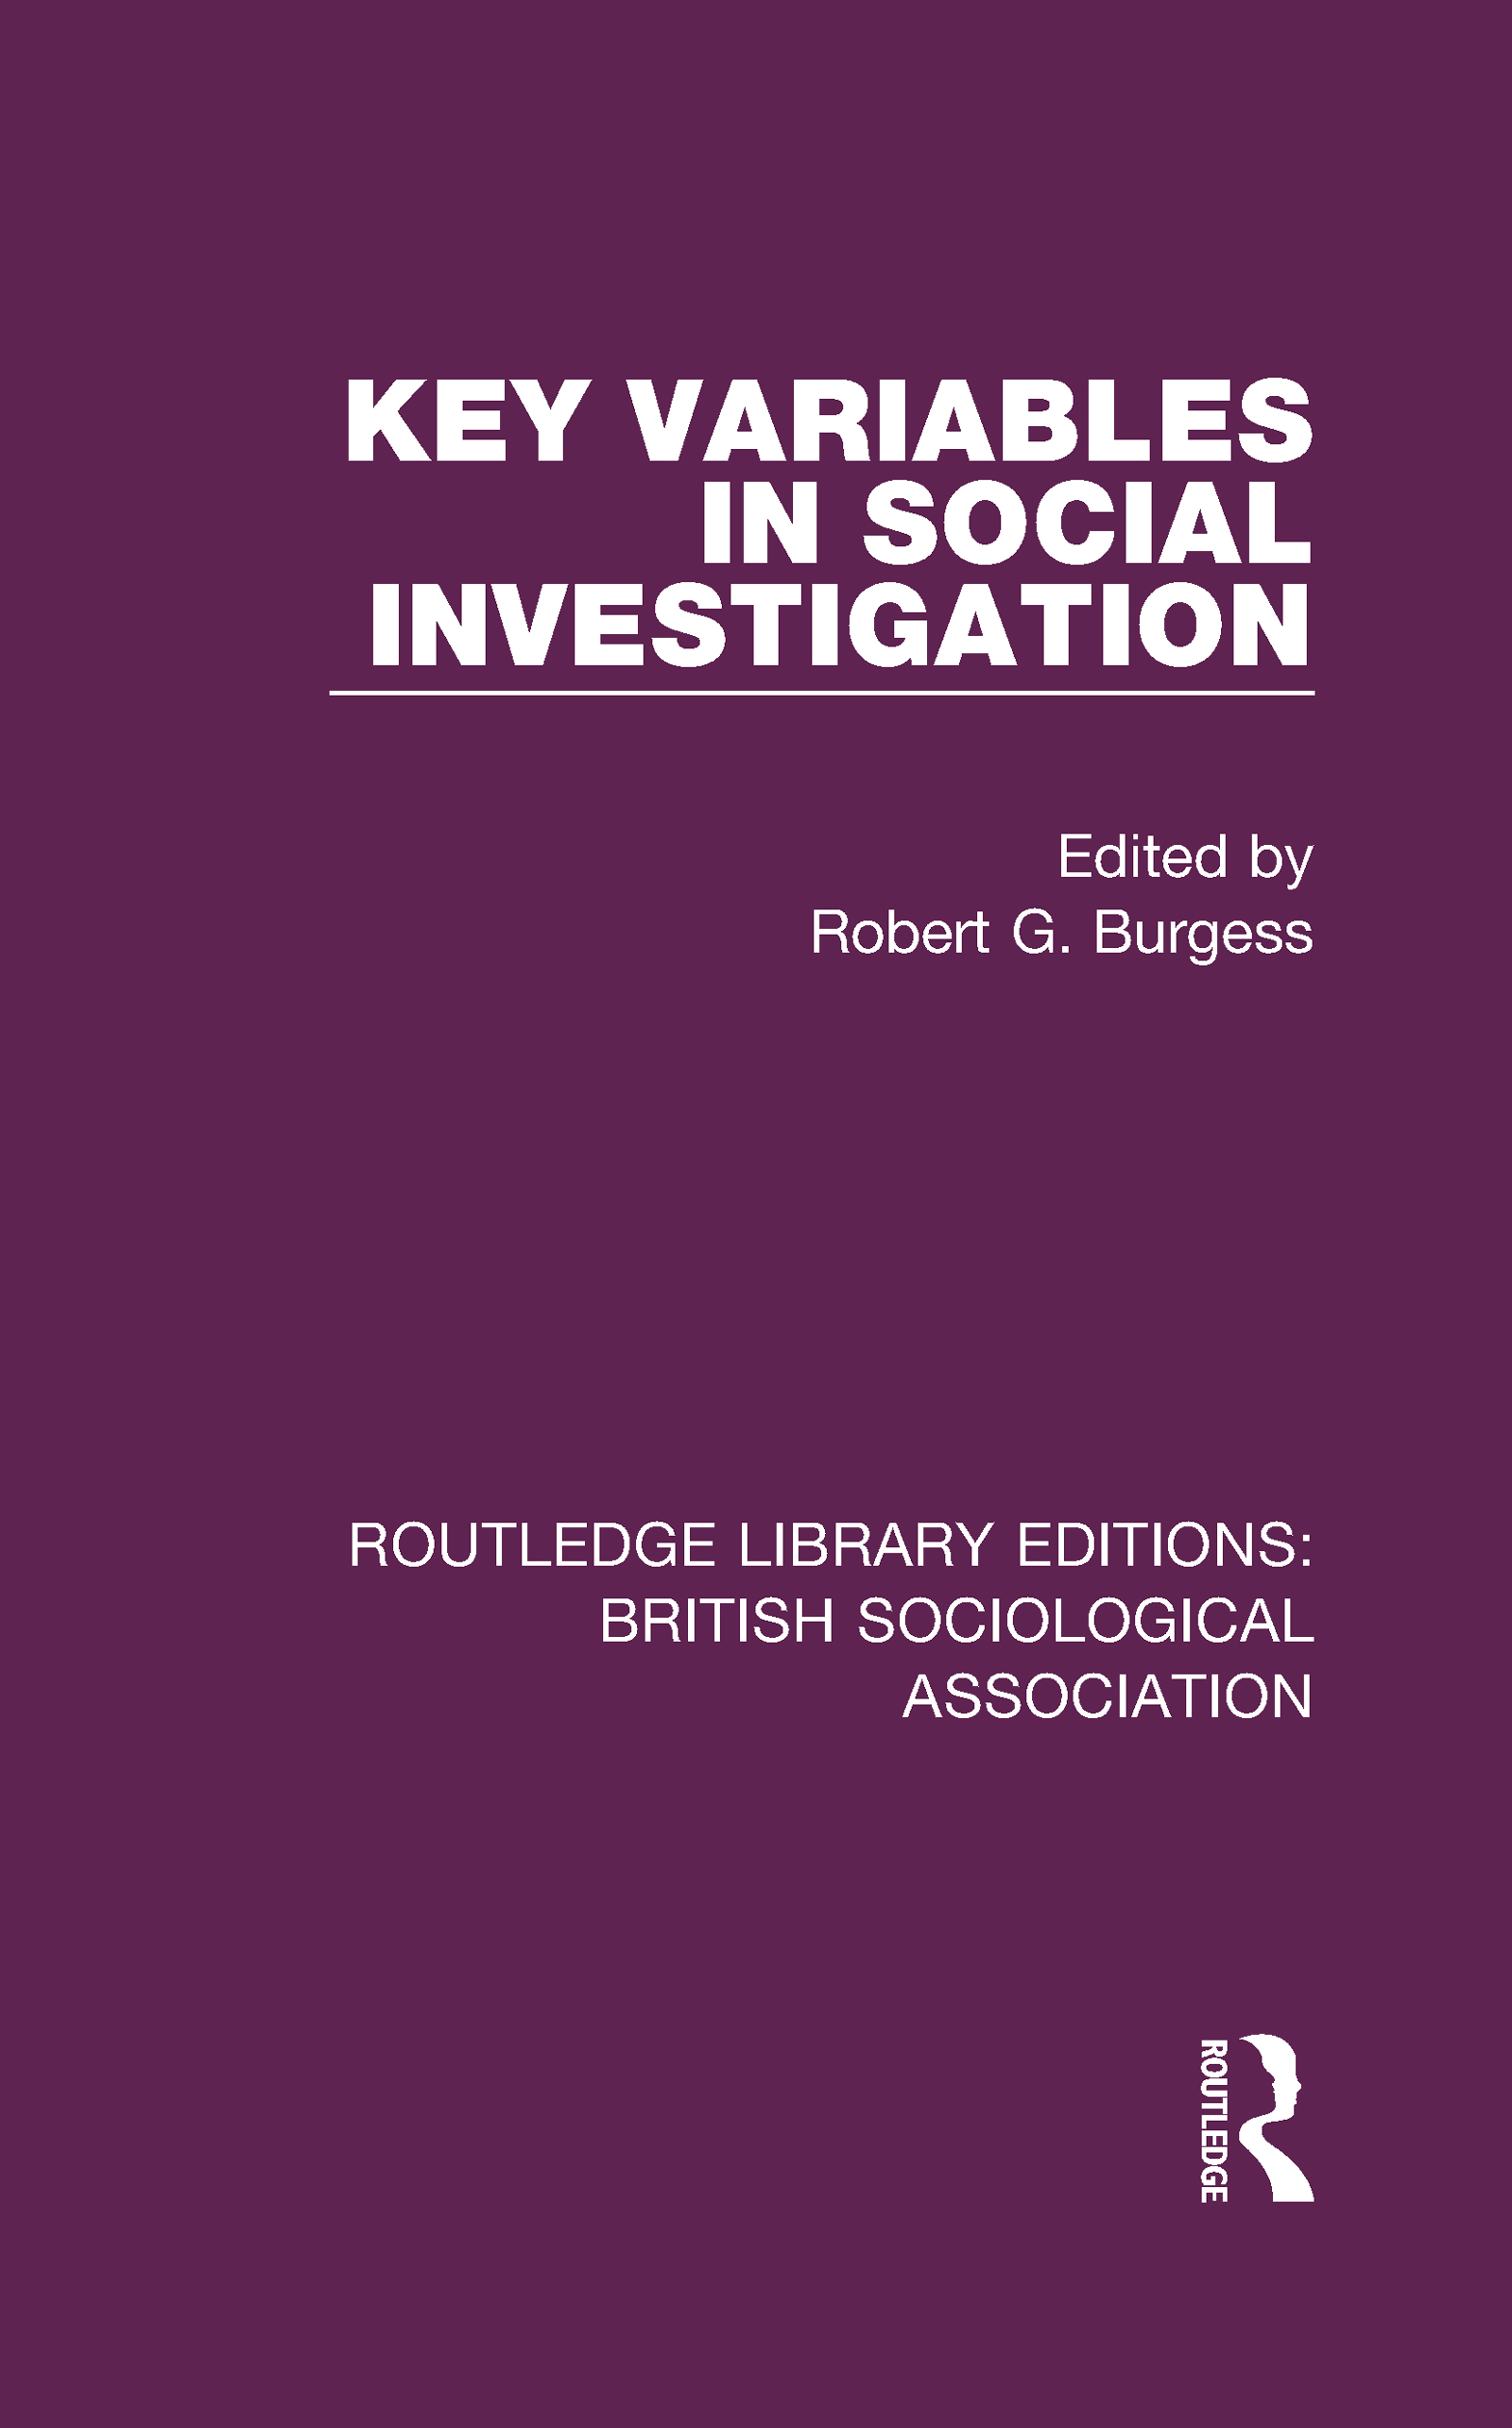 Key Variables in Social Investigation book cover